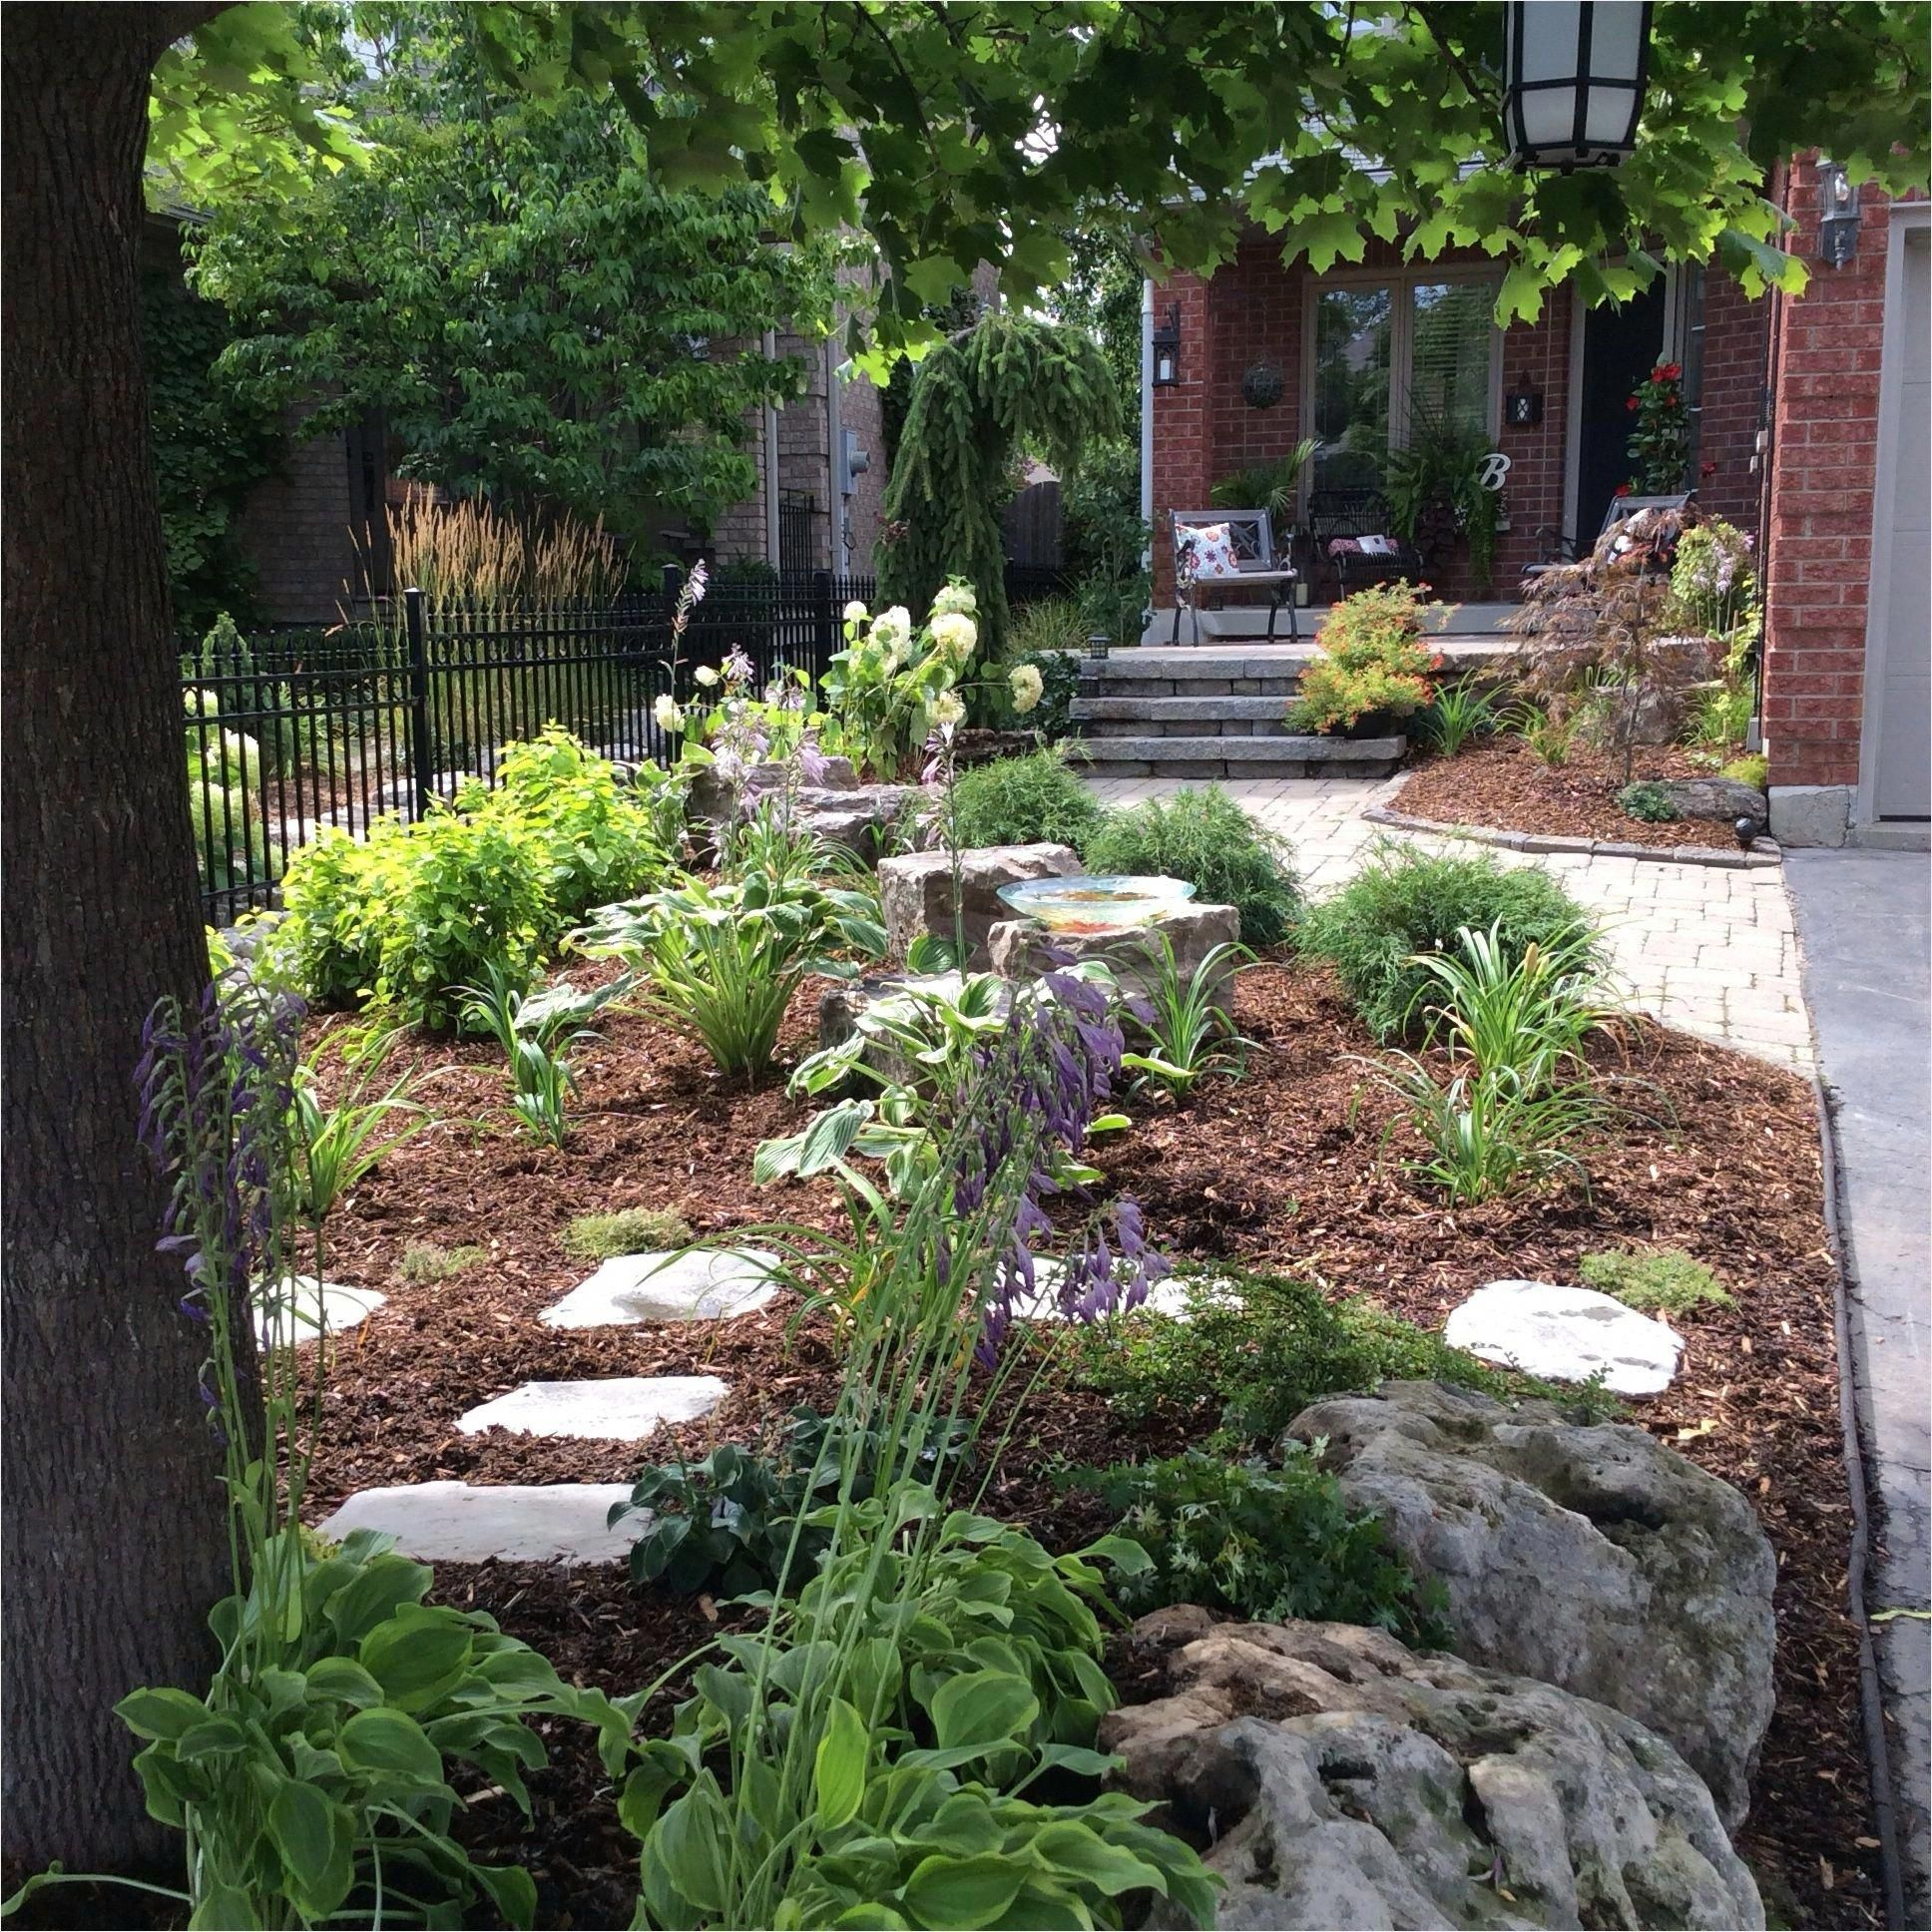 41 Adorable No Lawn Front Yard Landscaping 24 Small Front ...